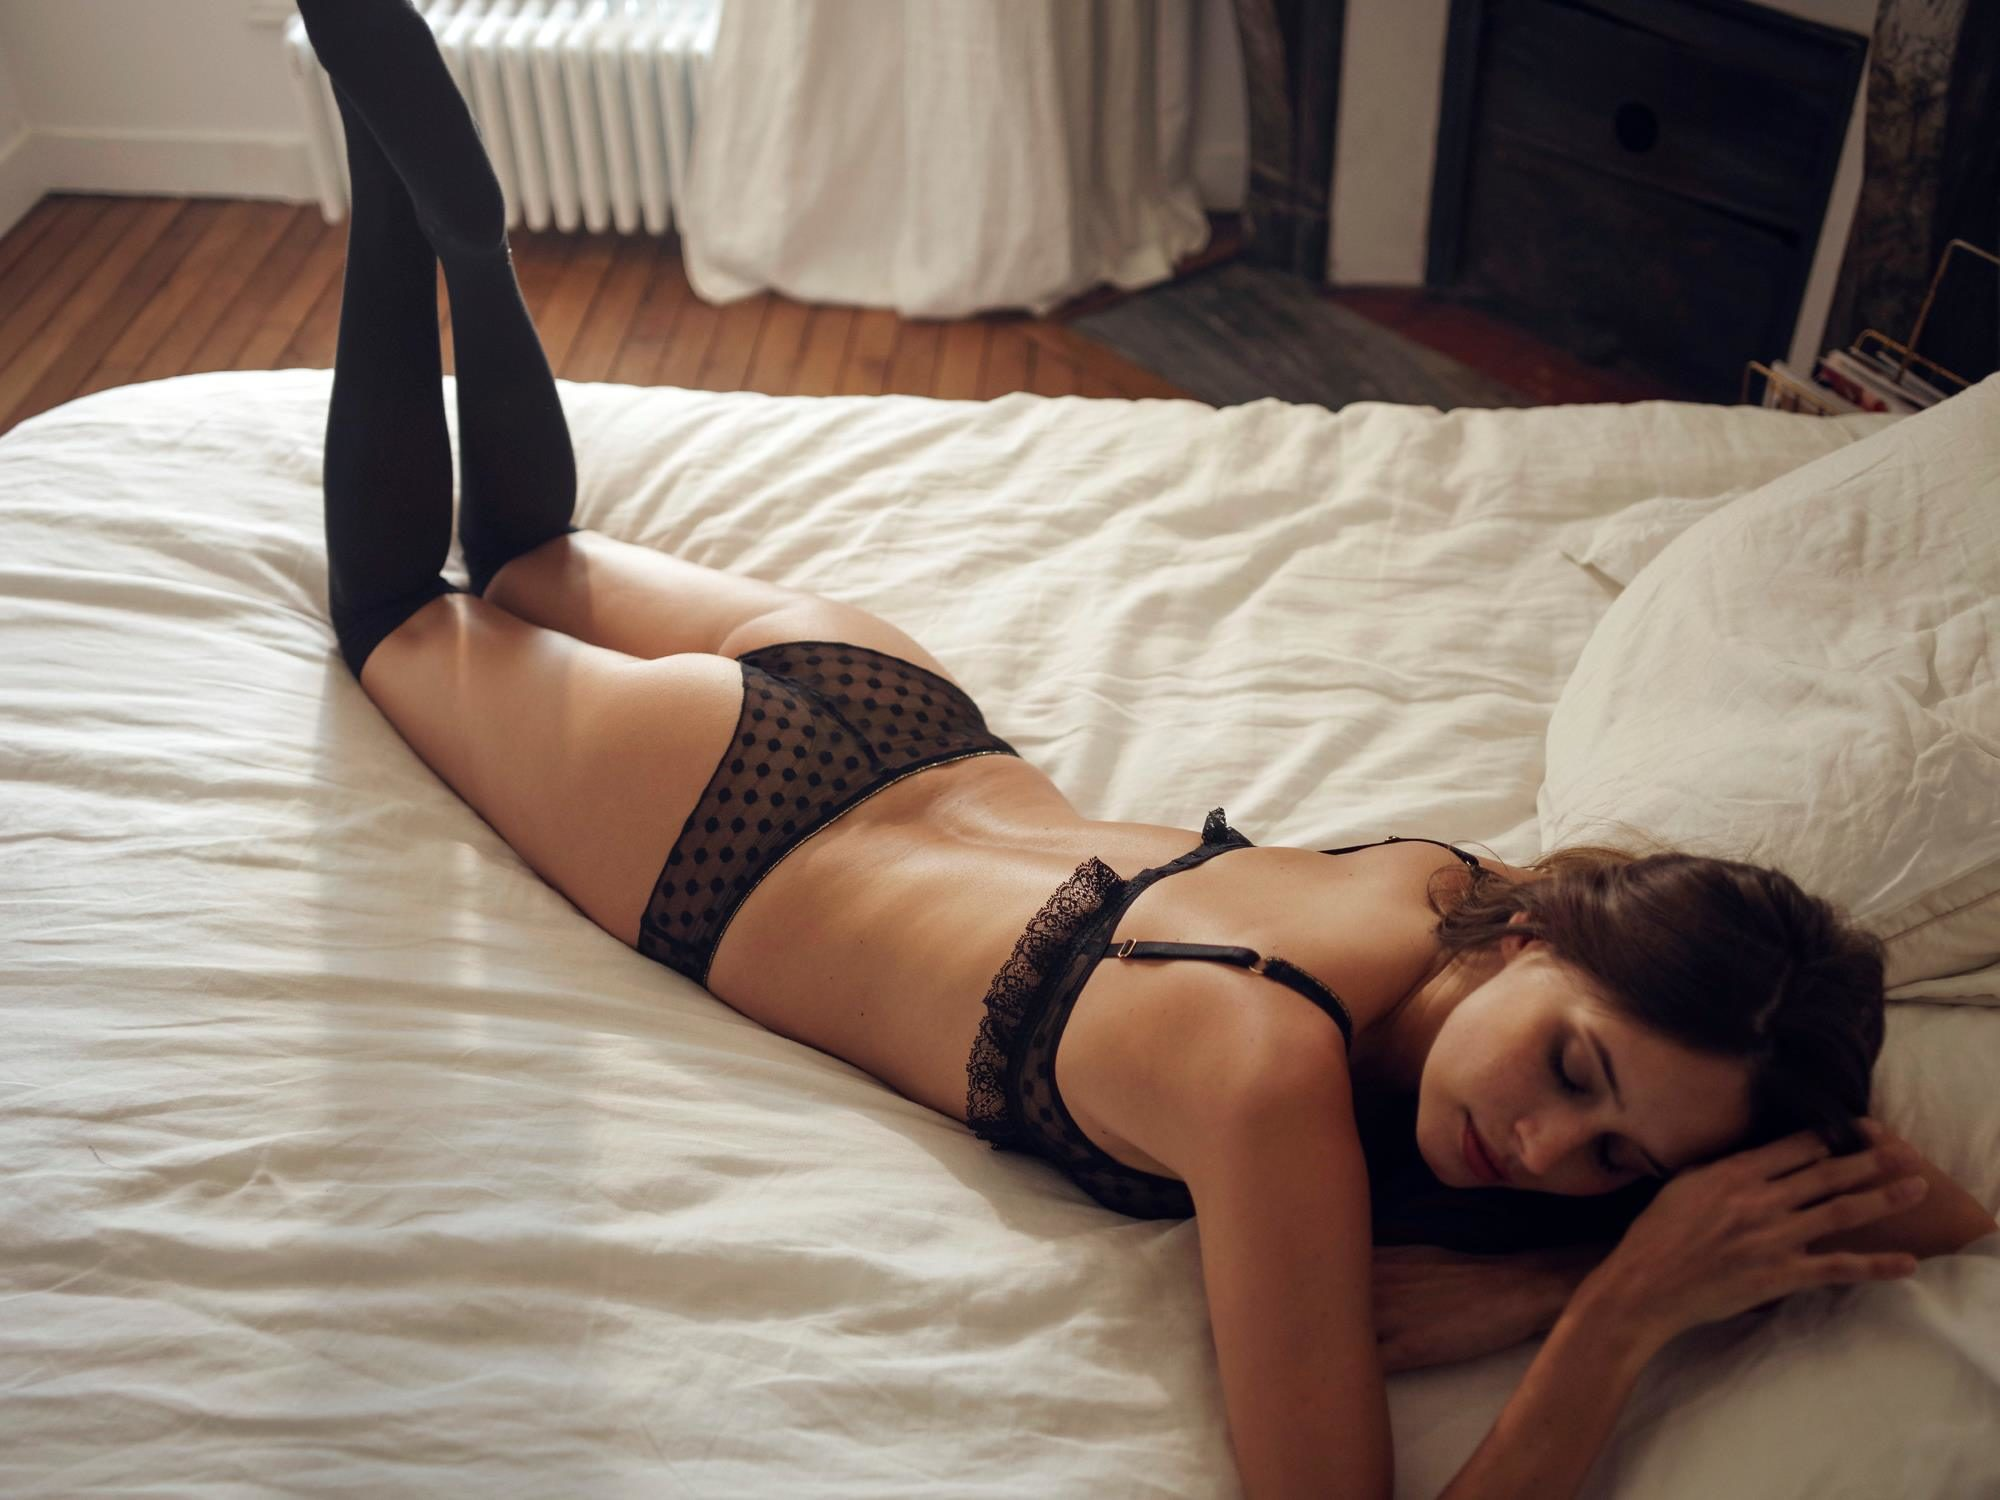 A woman wearing a matching bra and underwear with black knee-high socks from French fashion brand Ysé, lying on a bed.